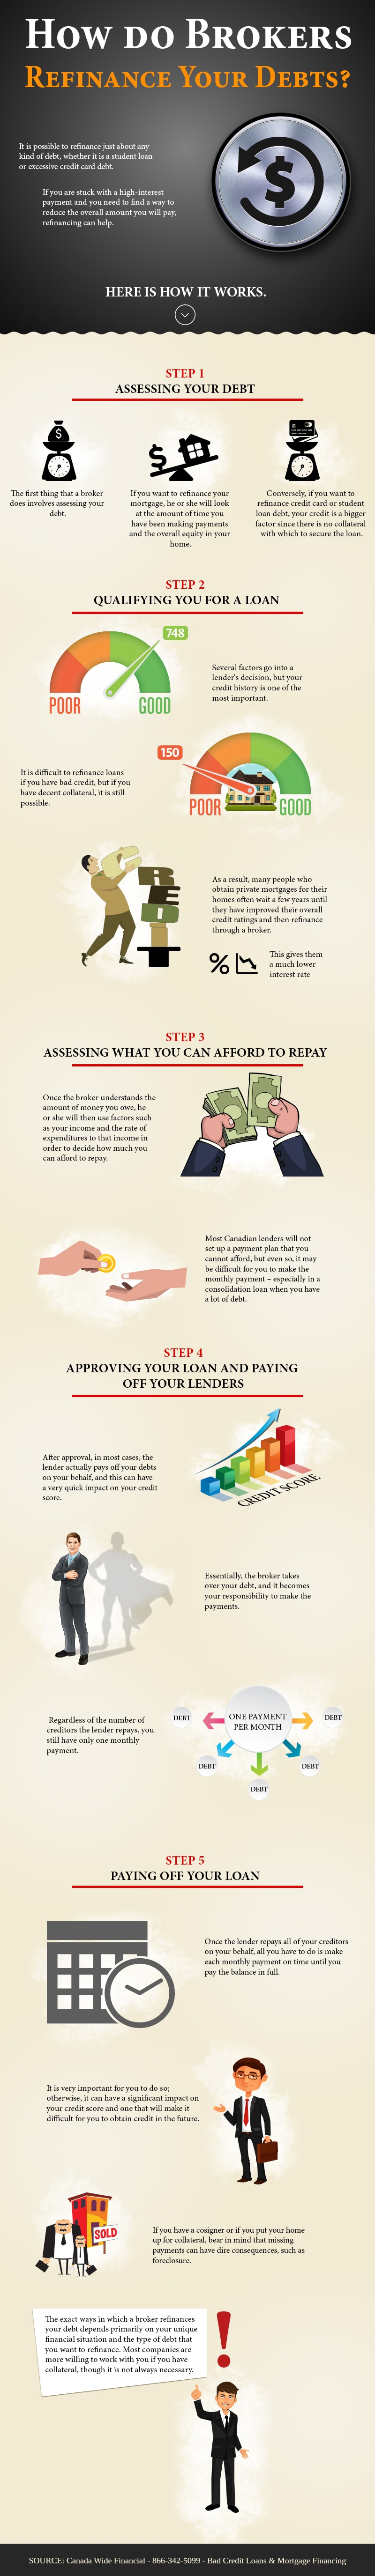 How do Brokers Refinance Your Debts - Infographic